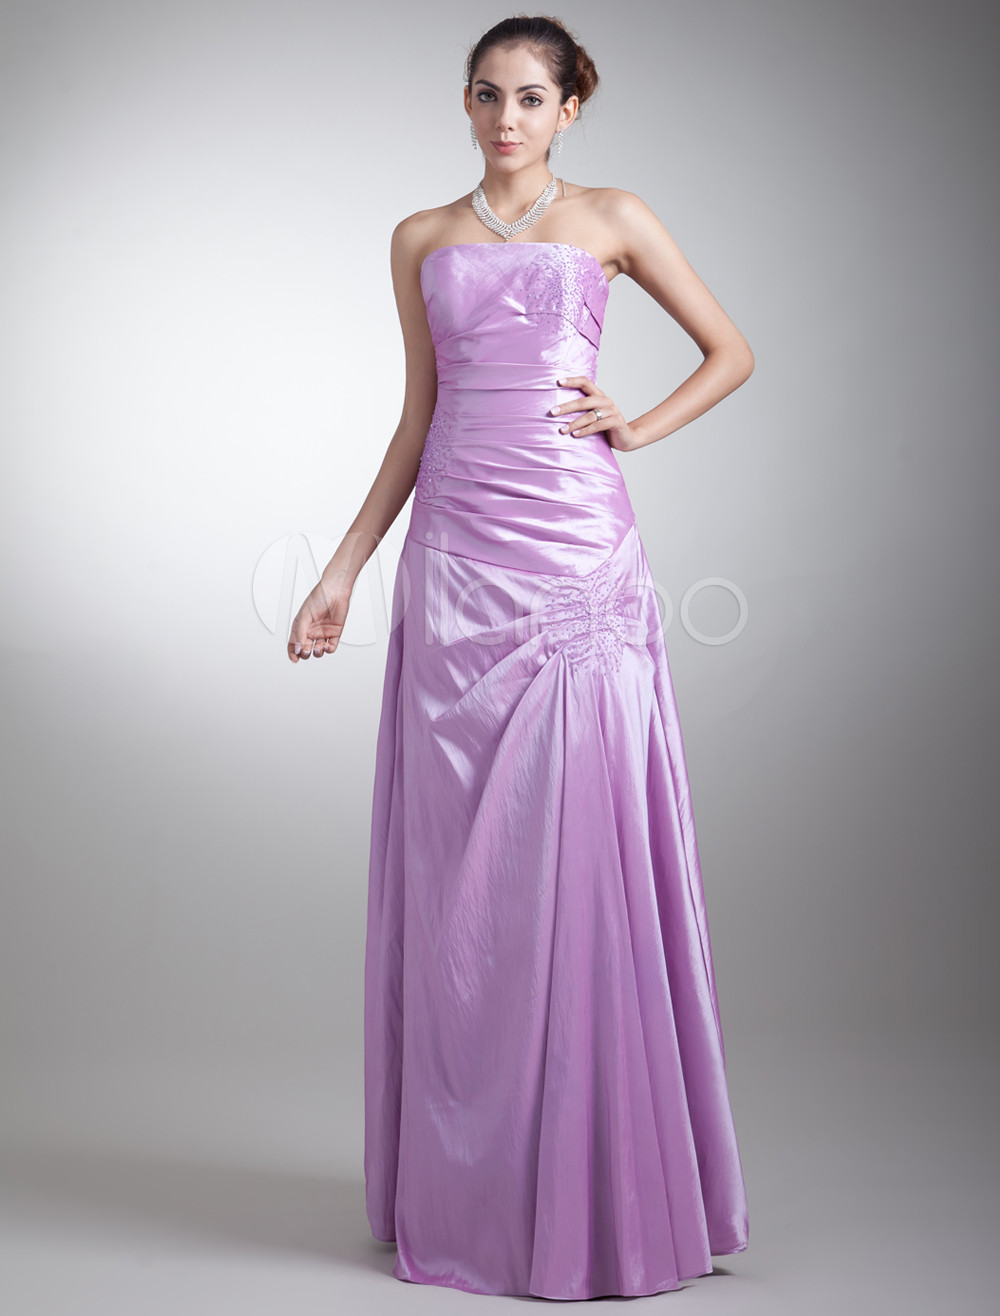 Sheath Lilac Taffeta Beading Strapless Bridesmaid Dress For Wedding